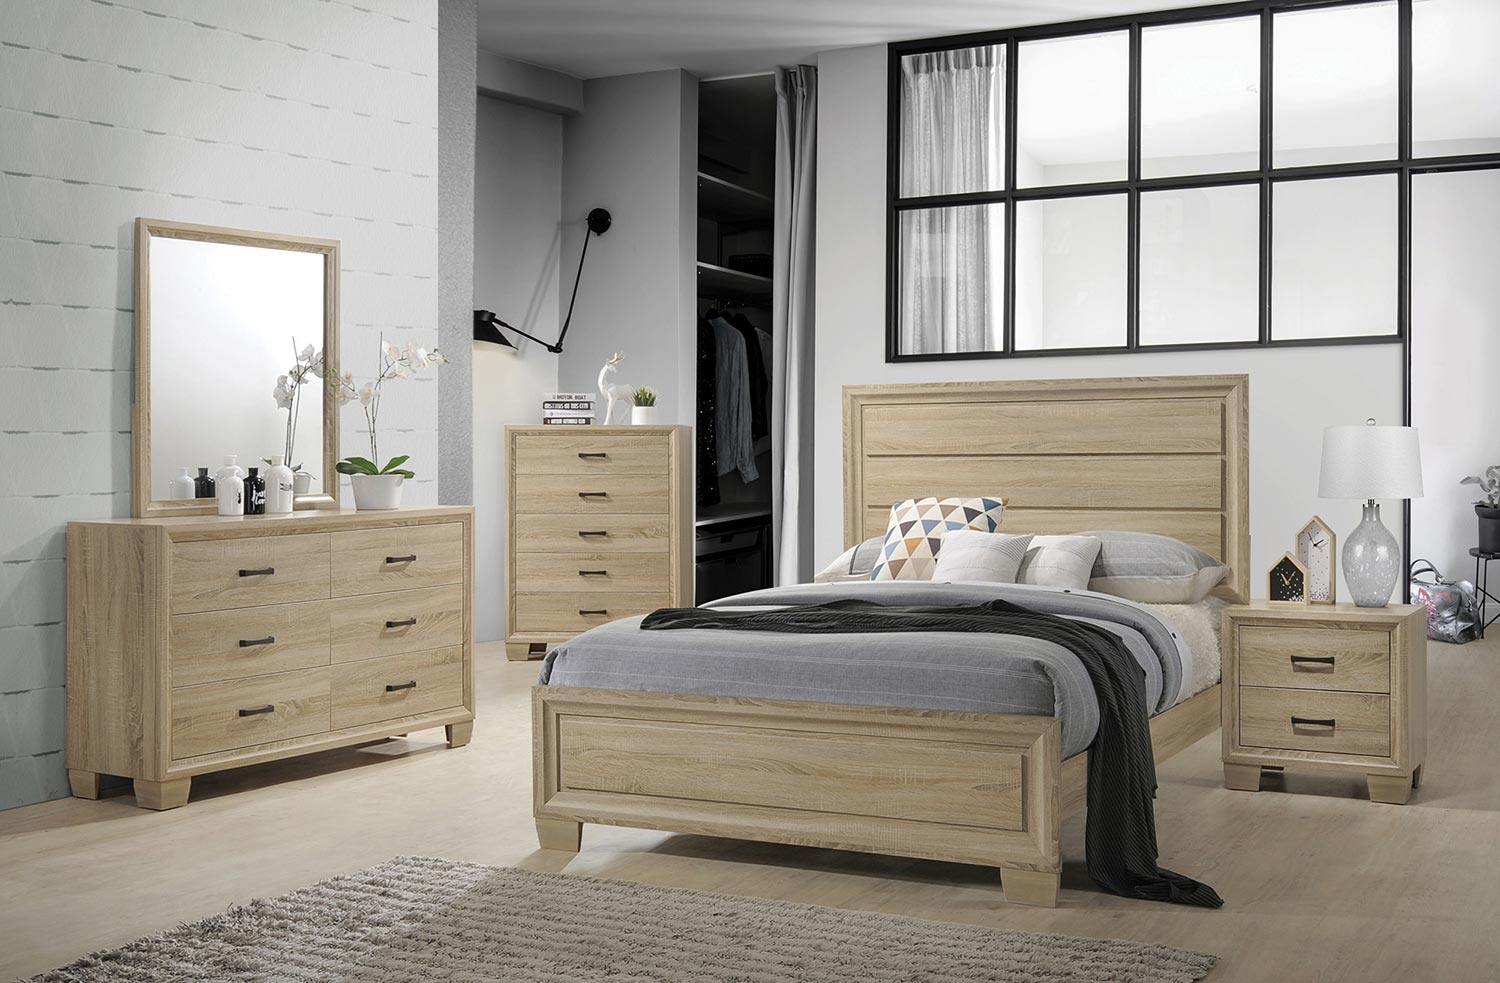 Coaster Vernon Bedroom Set - White Washed Oak